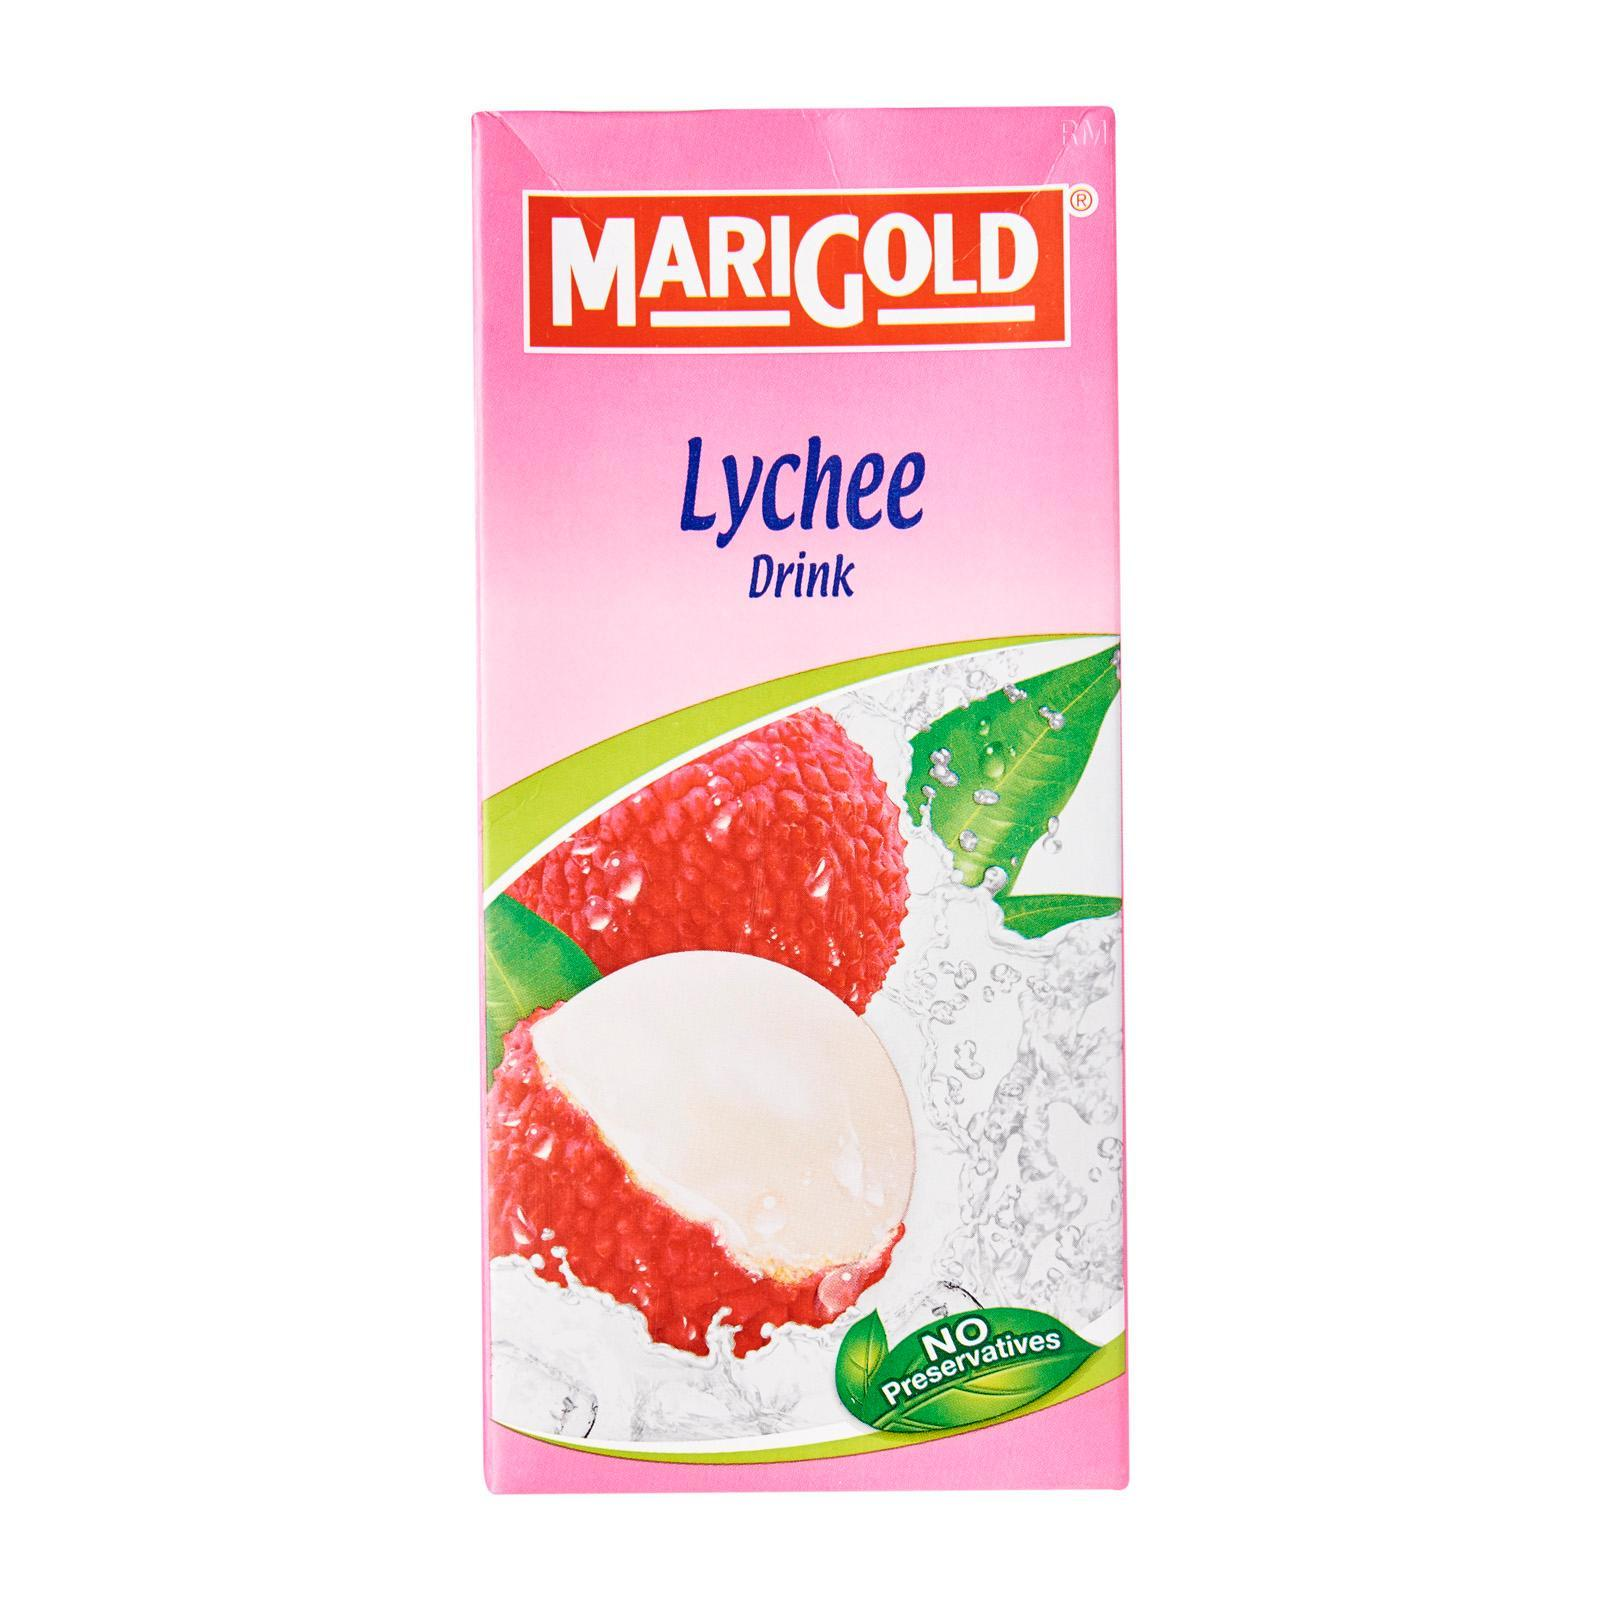 Marigold Asian Drink Lychee 1L